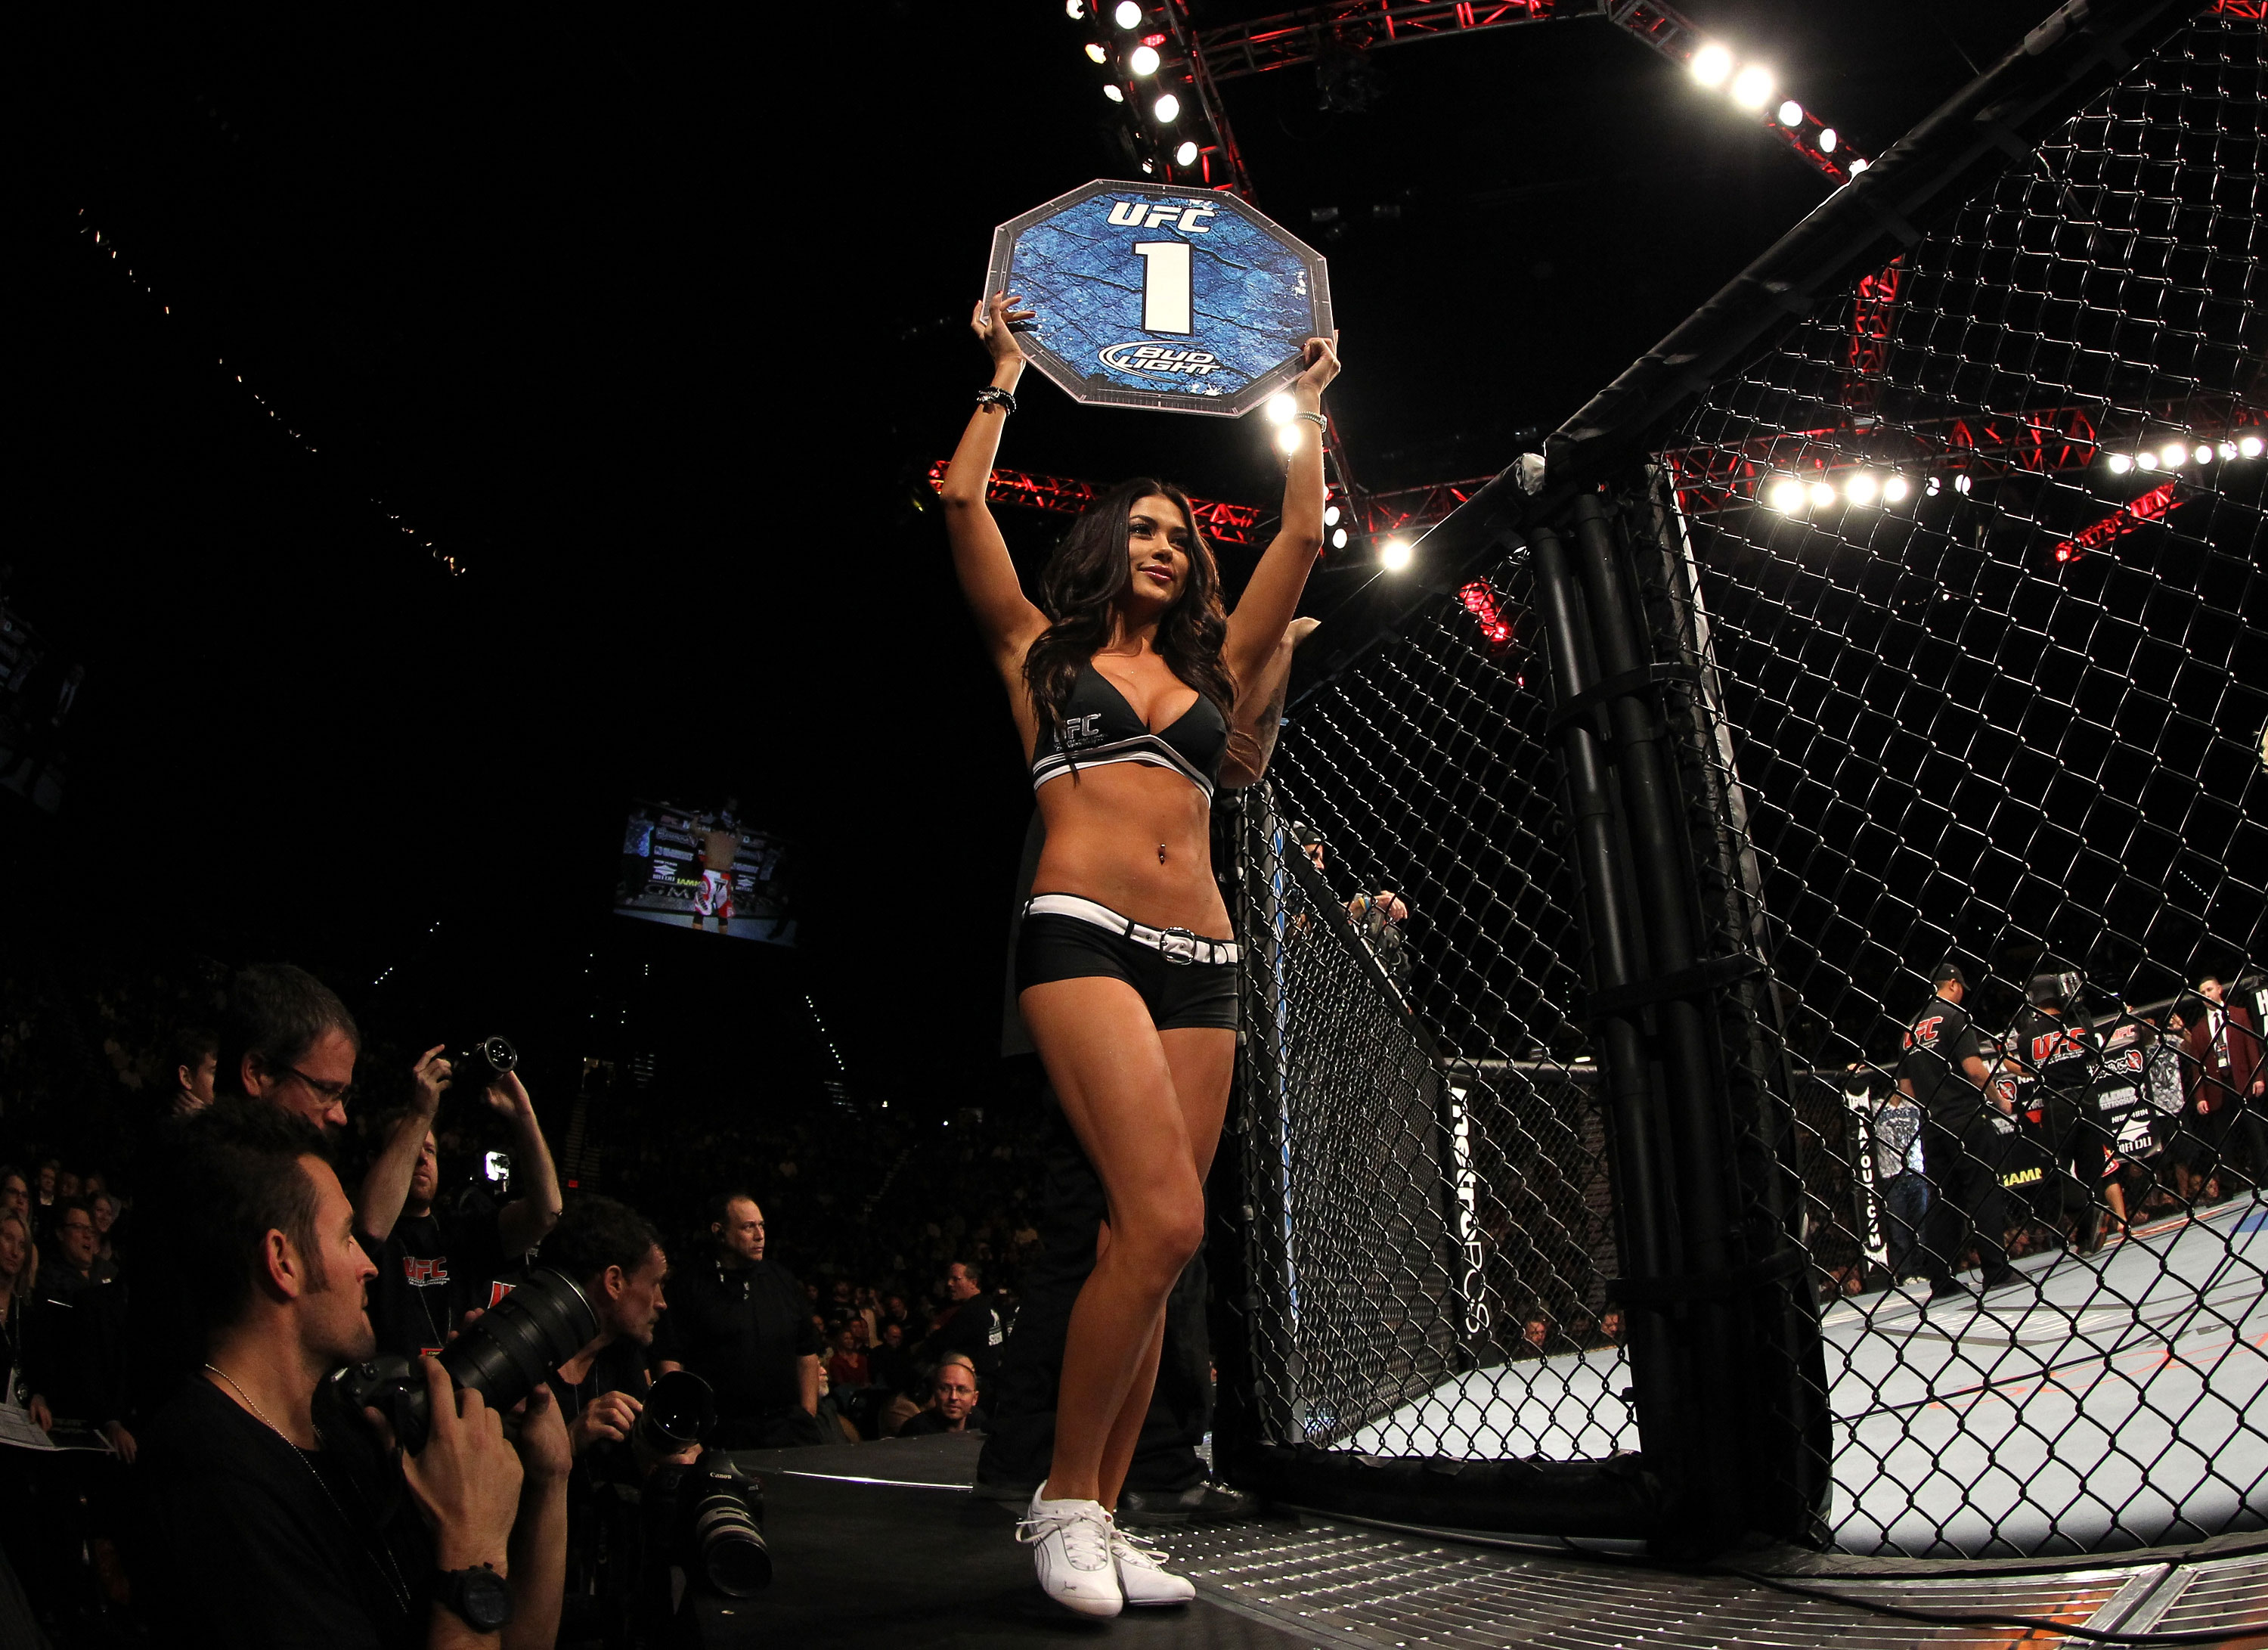 LAS VEGAS, NV - DECEMBER 30:  Arianny Celeste introduces round one during the UFC 141 event at the MGM Grand Garden Arena on December 30, 2011 in Las Vegas, Nevada.  (Photo by Josh Hedges/Zuffa LLC/Zuffa LLC via Getty Images) *** Local Caption *** Arianny Celeste